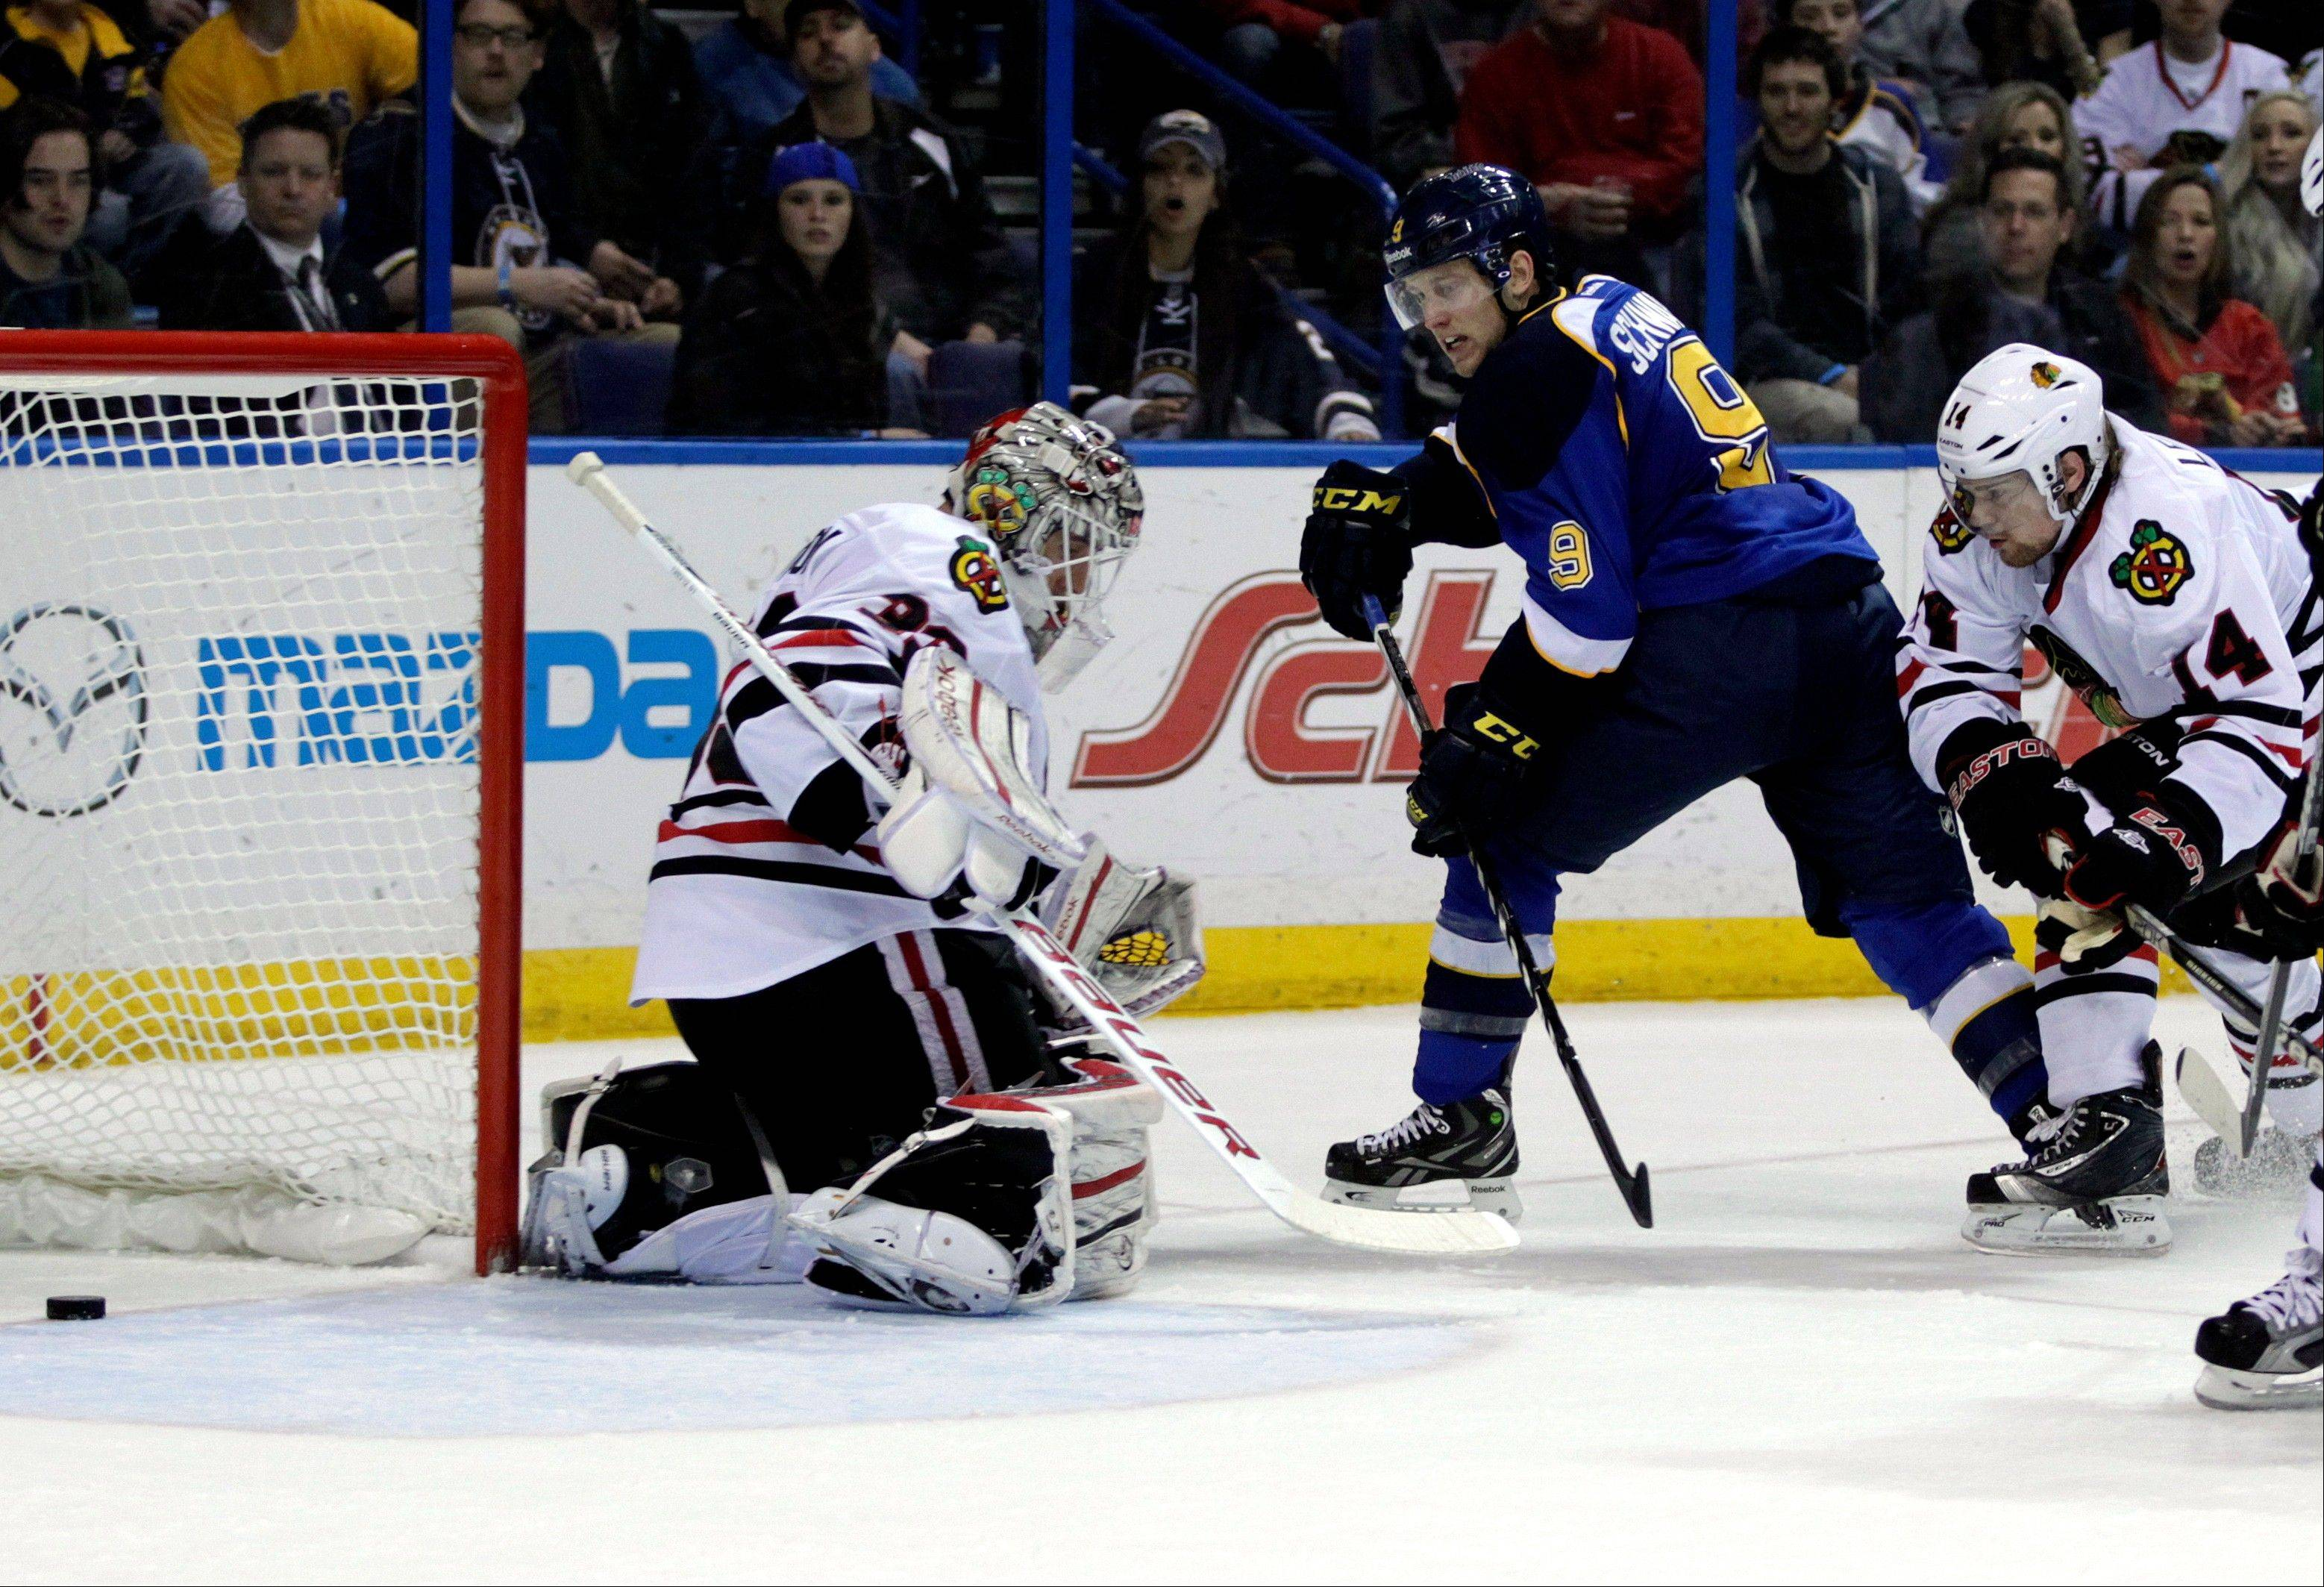 St. Louis Blues' Jaden Schwartz (9) slides the puck past Blackhawks goalie Carter Hutton (33) for his second goal of the game Saturday in St. Louis. The Blackhawks lost 3-1.